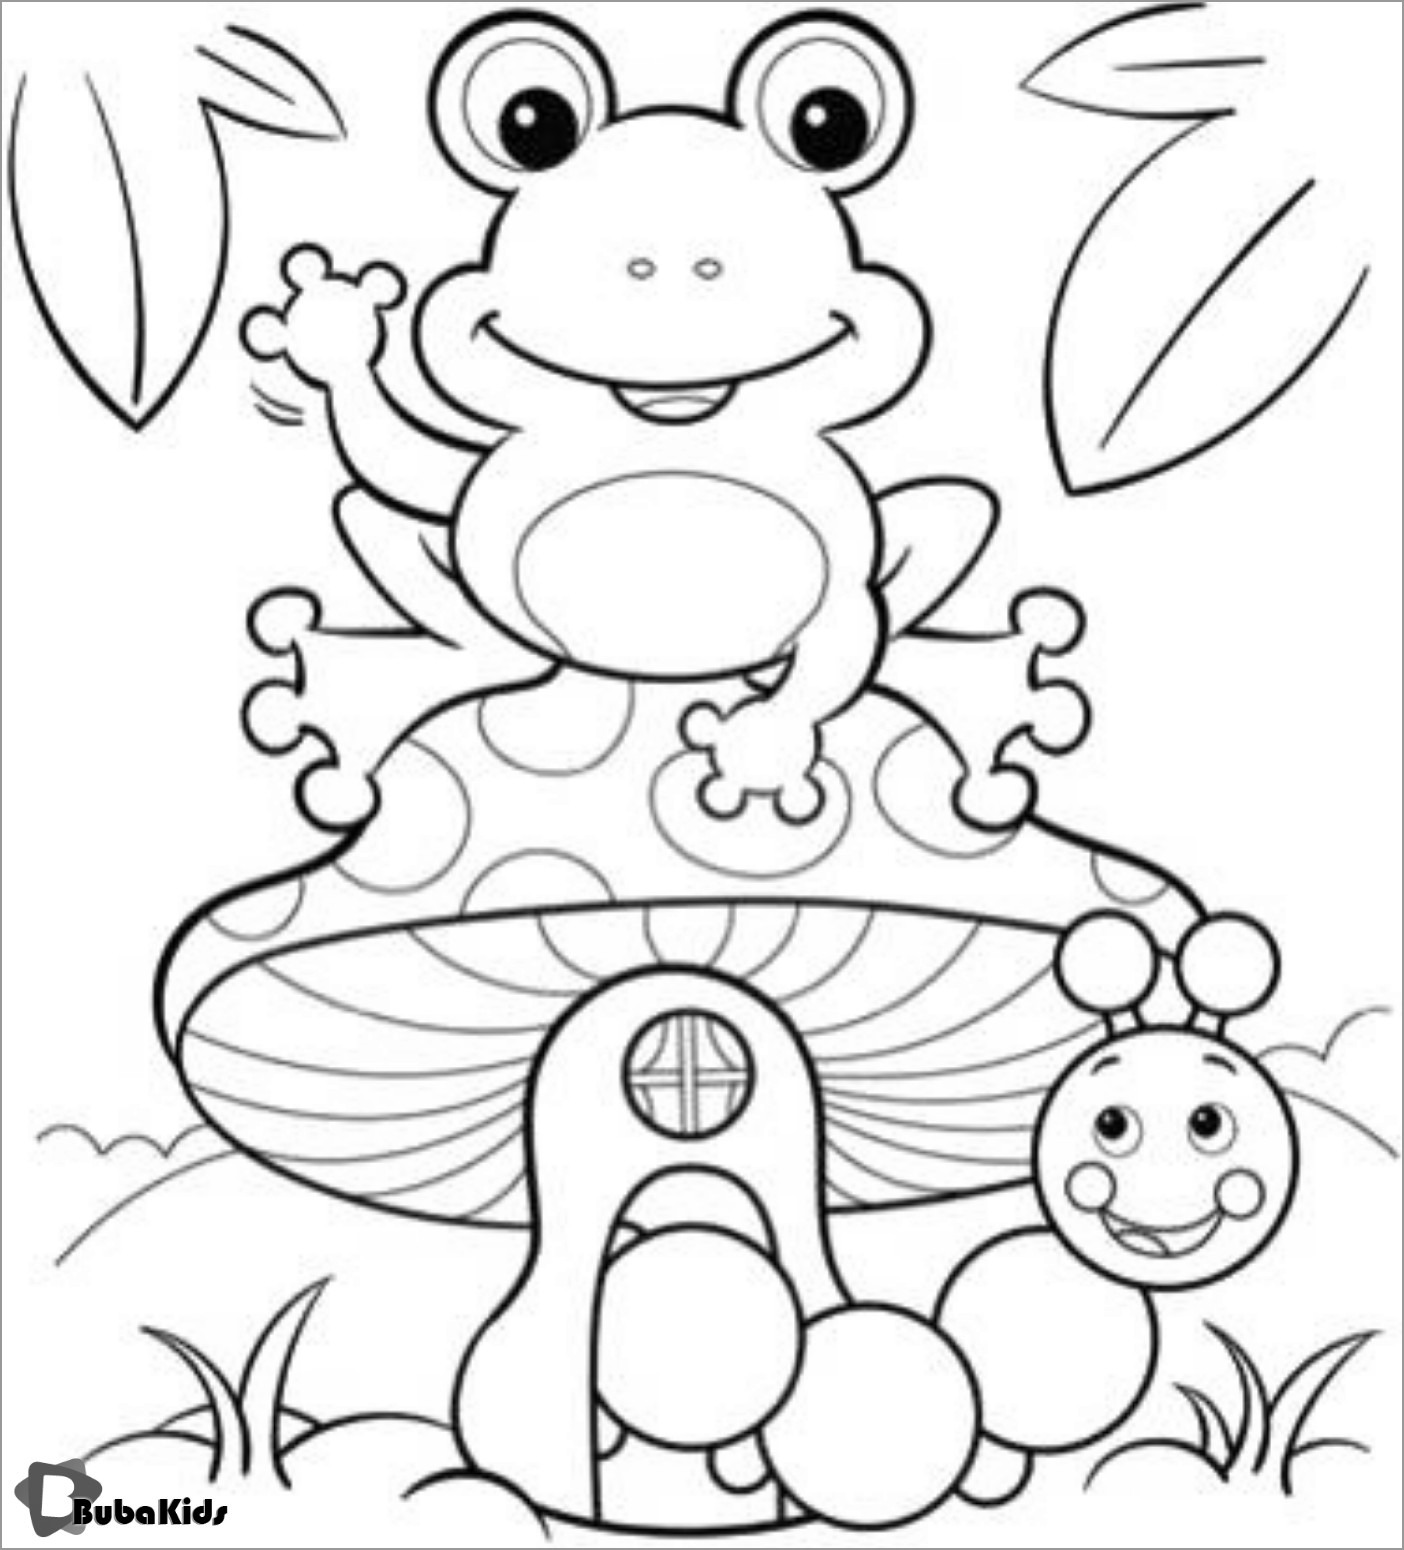 Cute toad Coloring Page